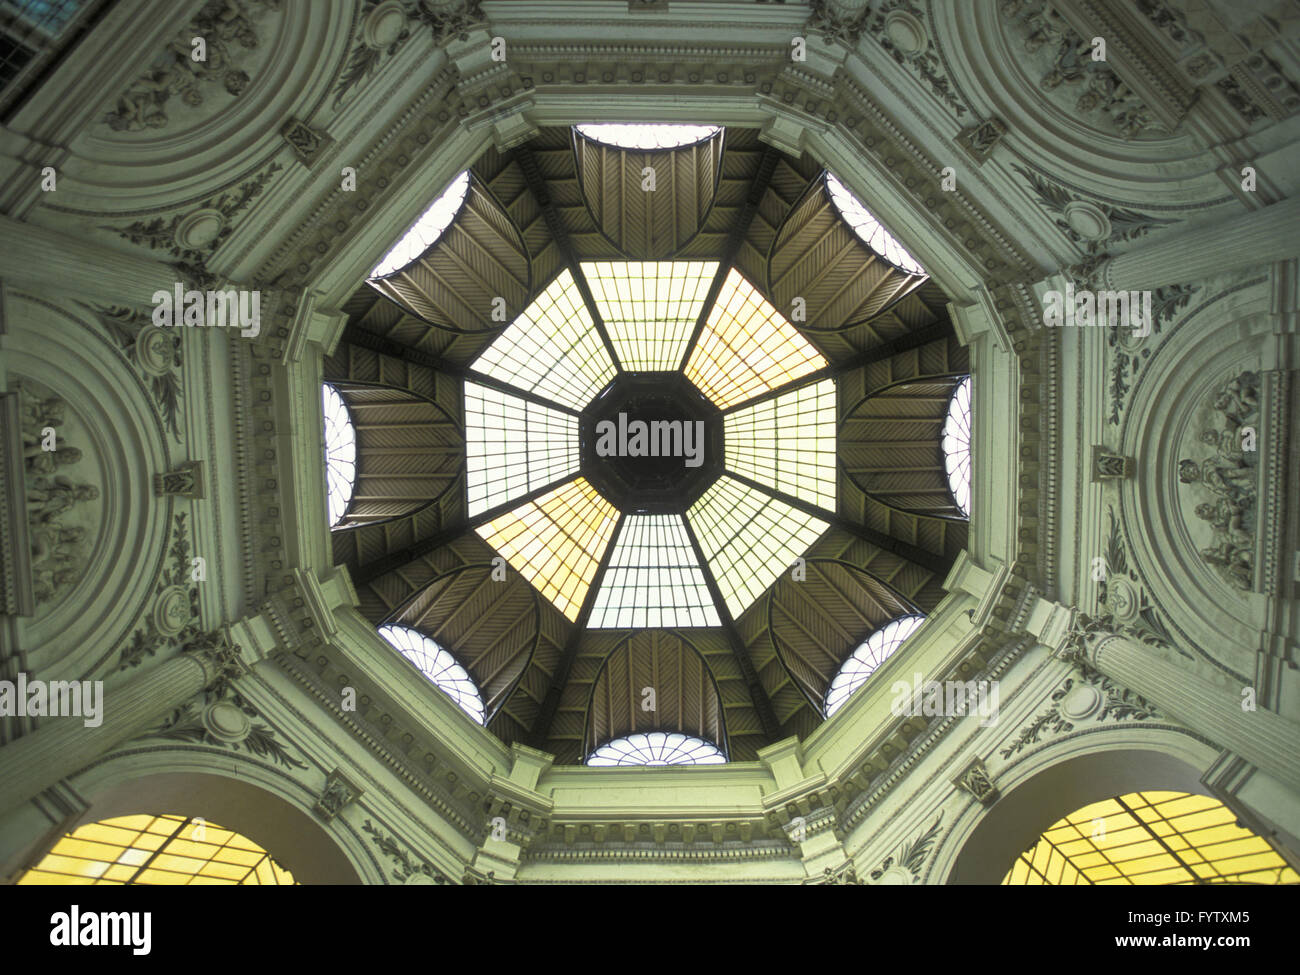 EAST EUROPE ROMANIA BUCHAREST CITY - Stock Image